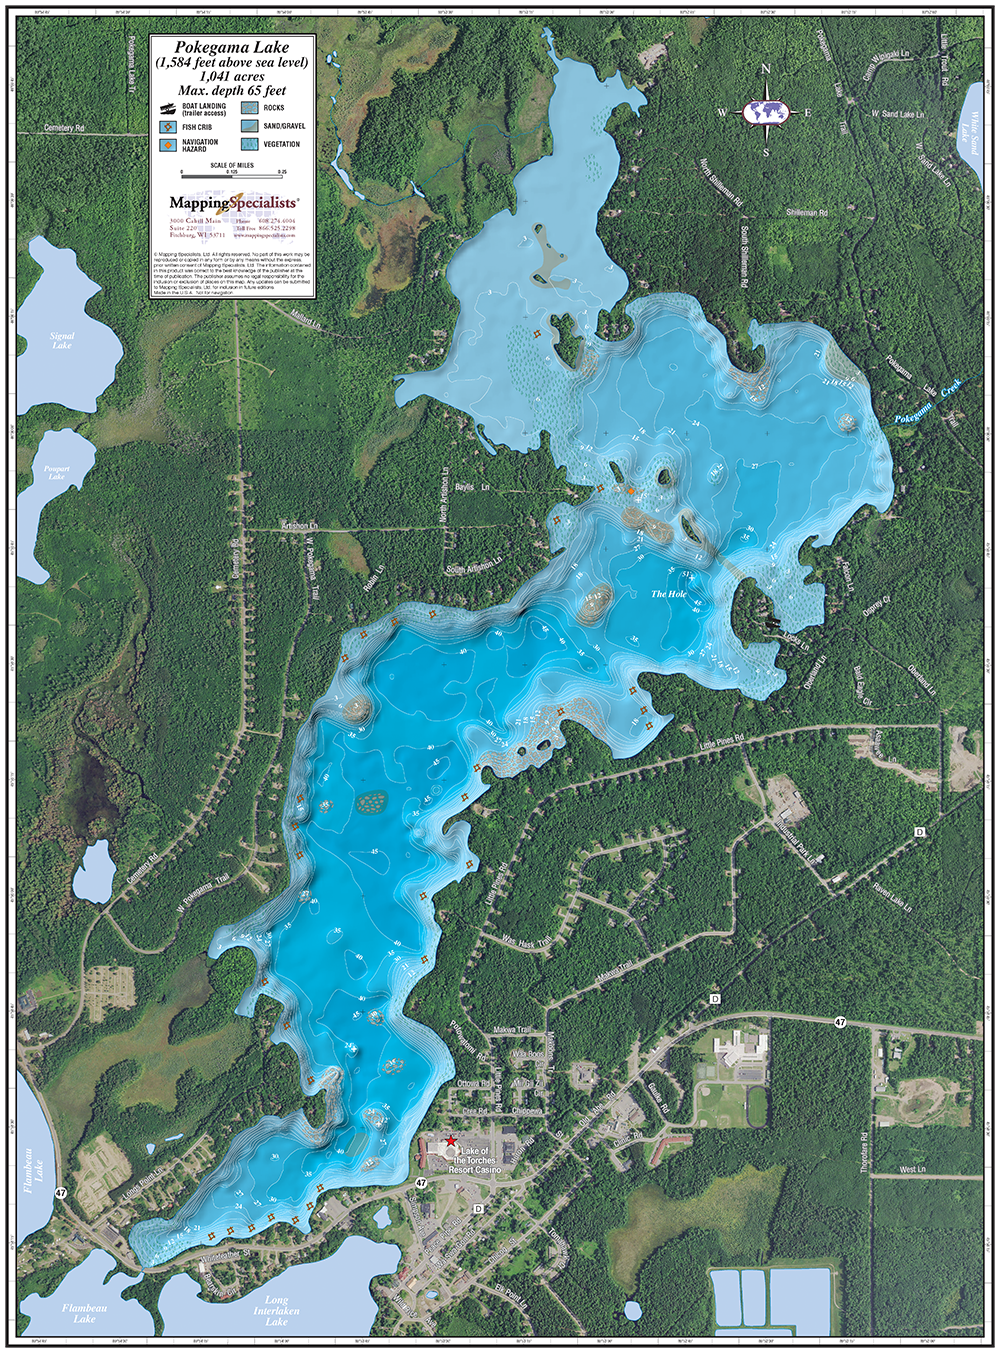 Pokegama Lake Enhanced Wall Map - Pokegama lake map